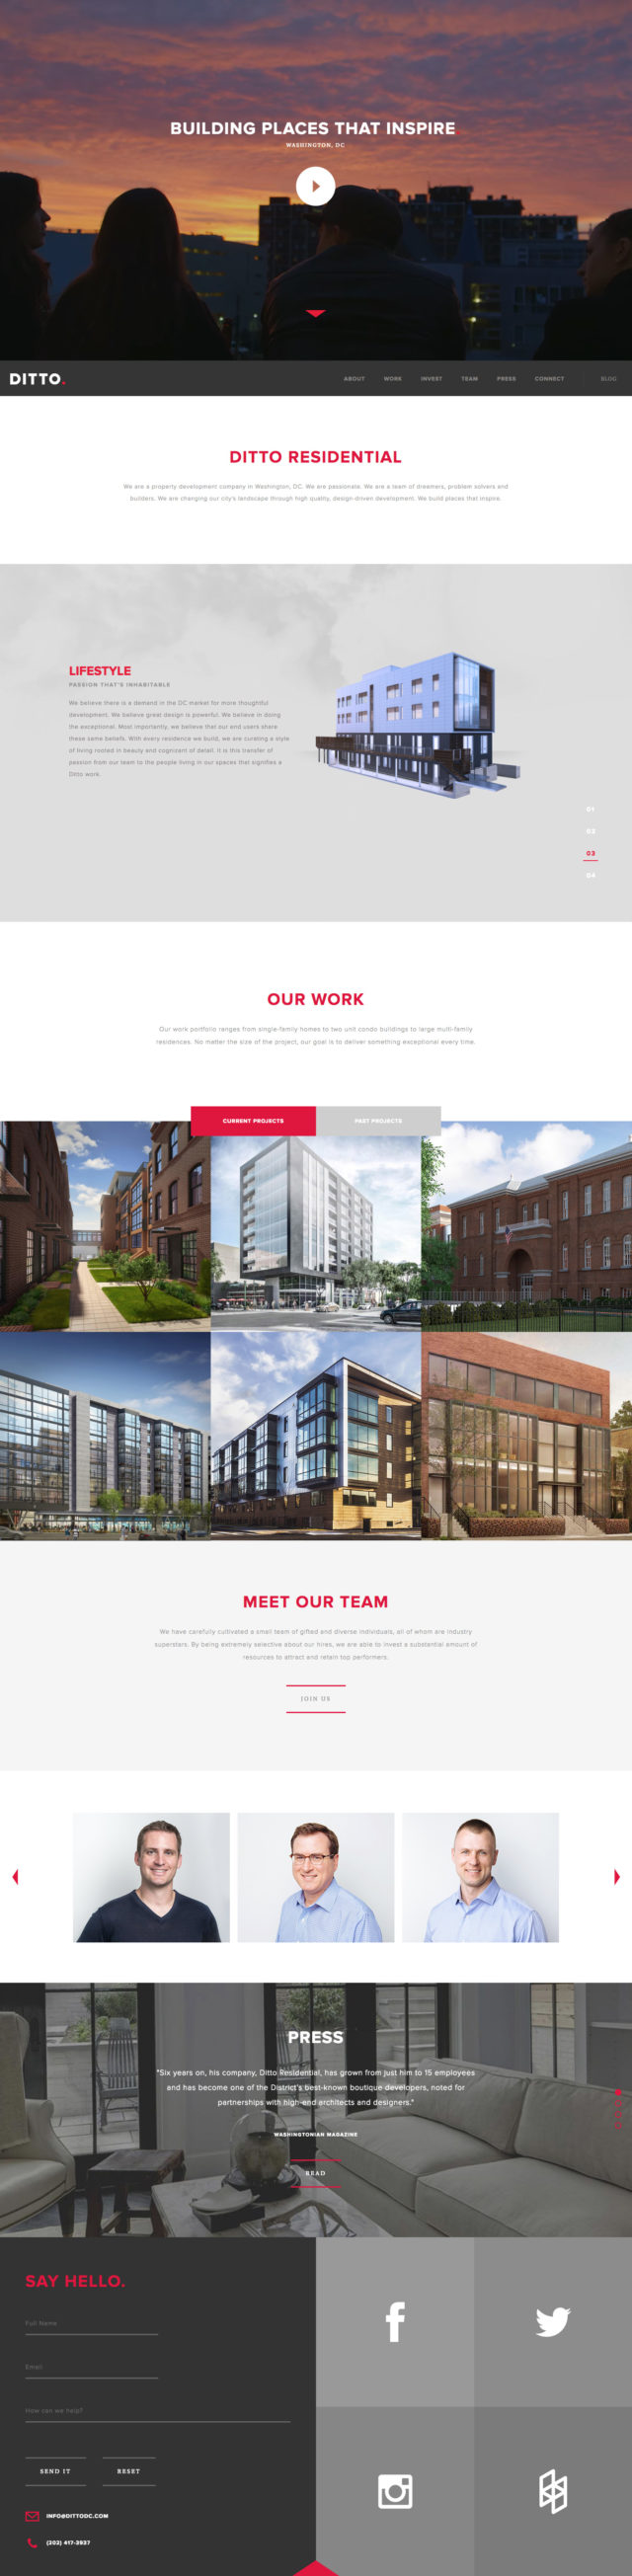 Are these the best contractor website designs for 2018